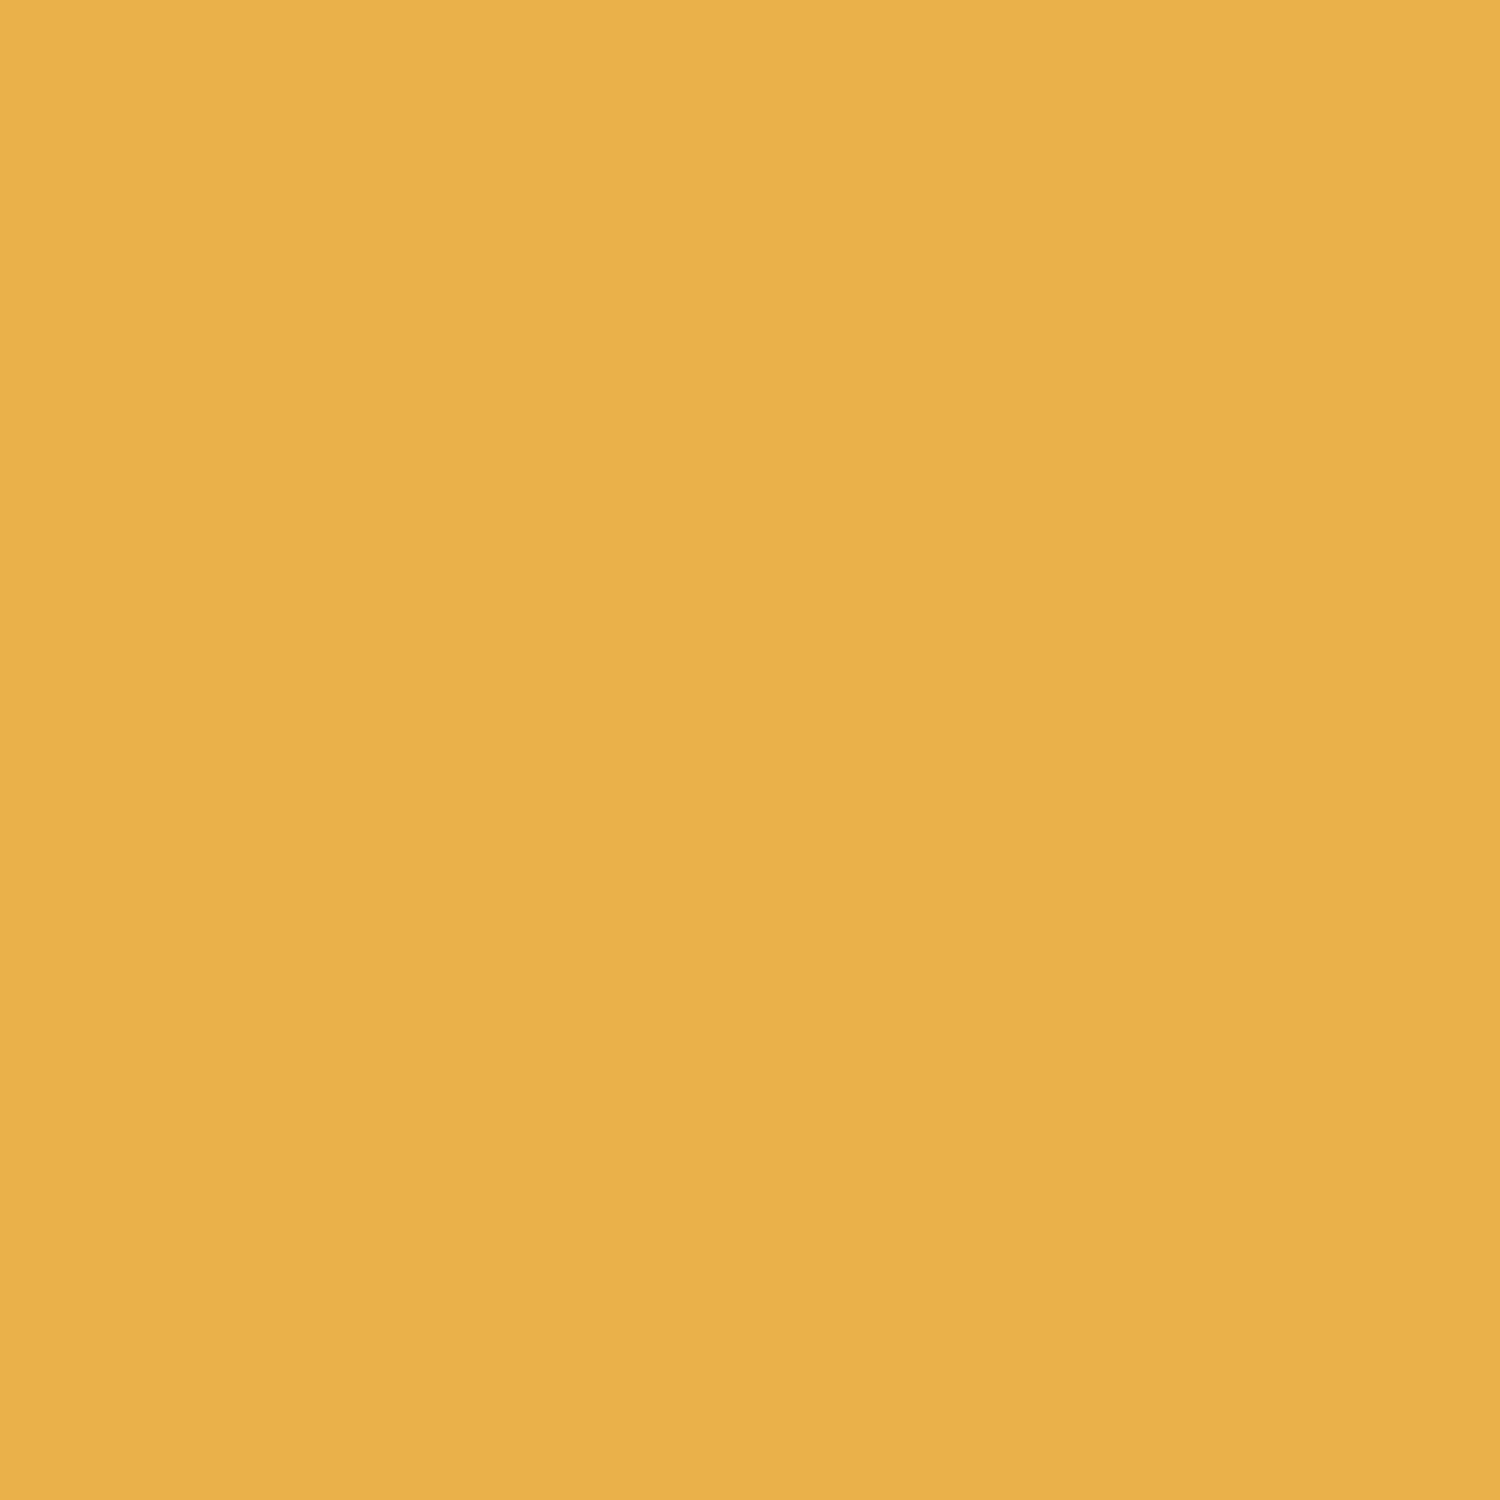 Painter's Palette - Goldenrod